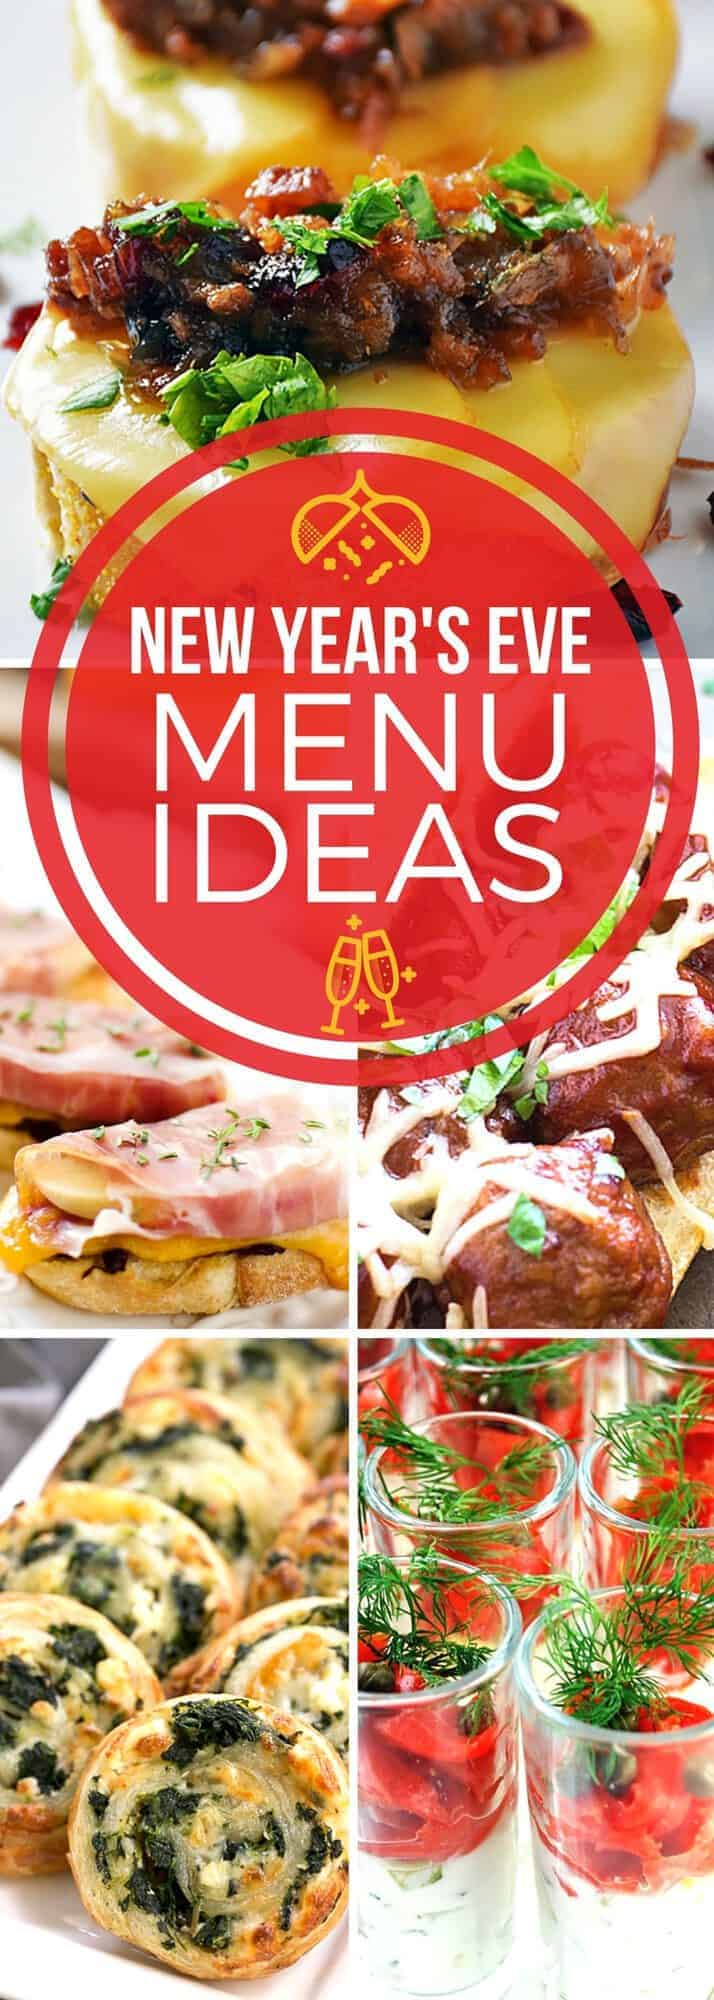 The New Year is upon us! Our New Year's Eve menu ideas have got you covered for all of the party recipes you'll need. Whether you're serving a handful of people or a big party, these no-fuss, tasty appetizer recipes make the perfect crowd pleasers! 